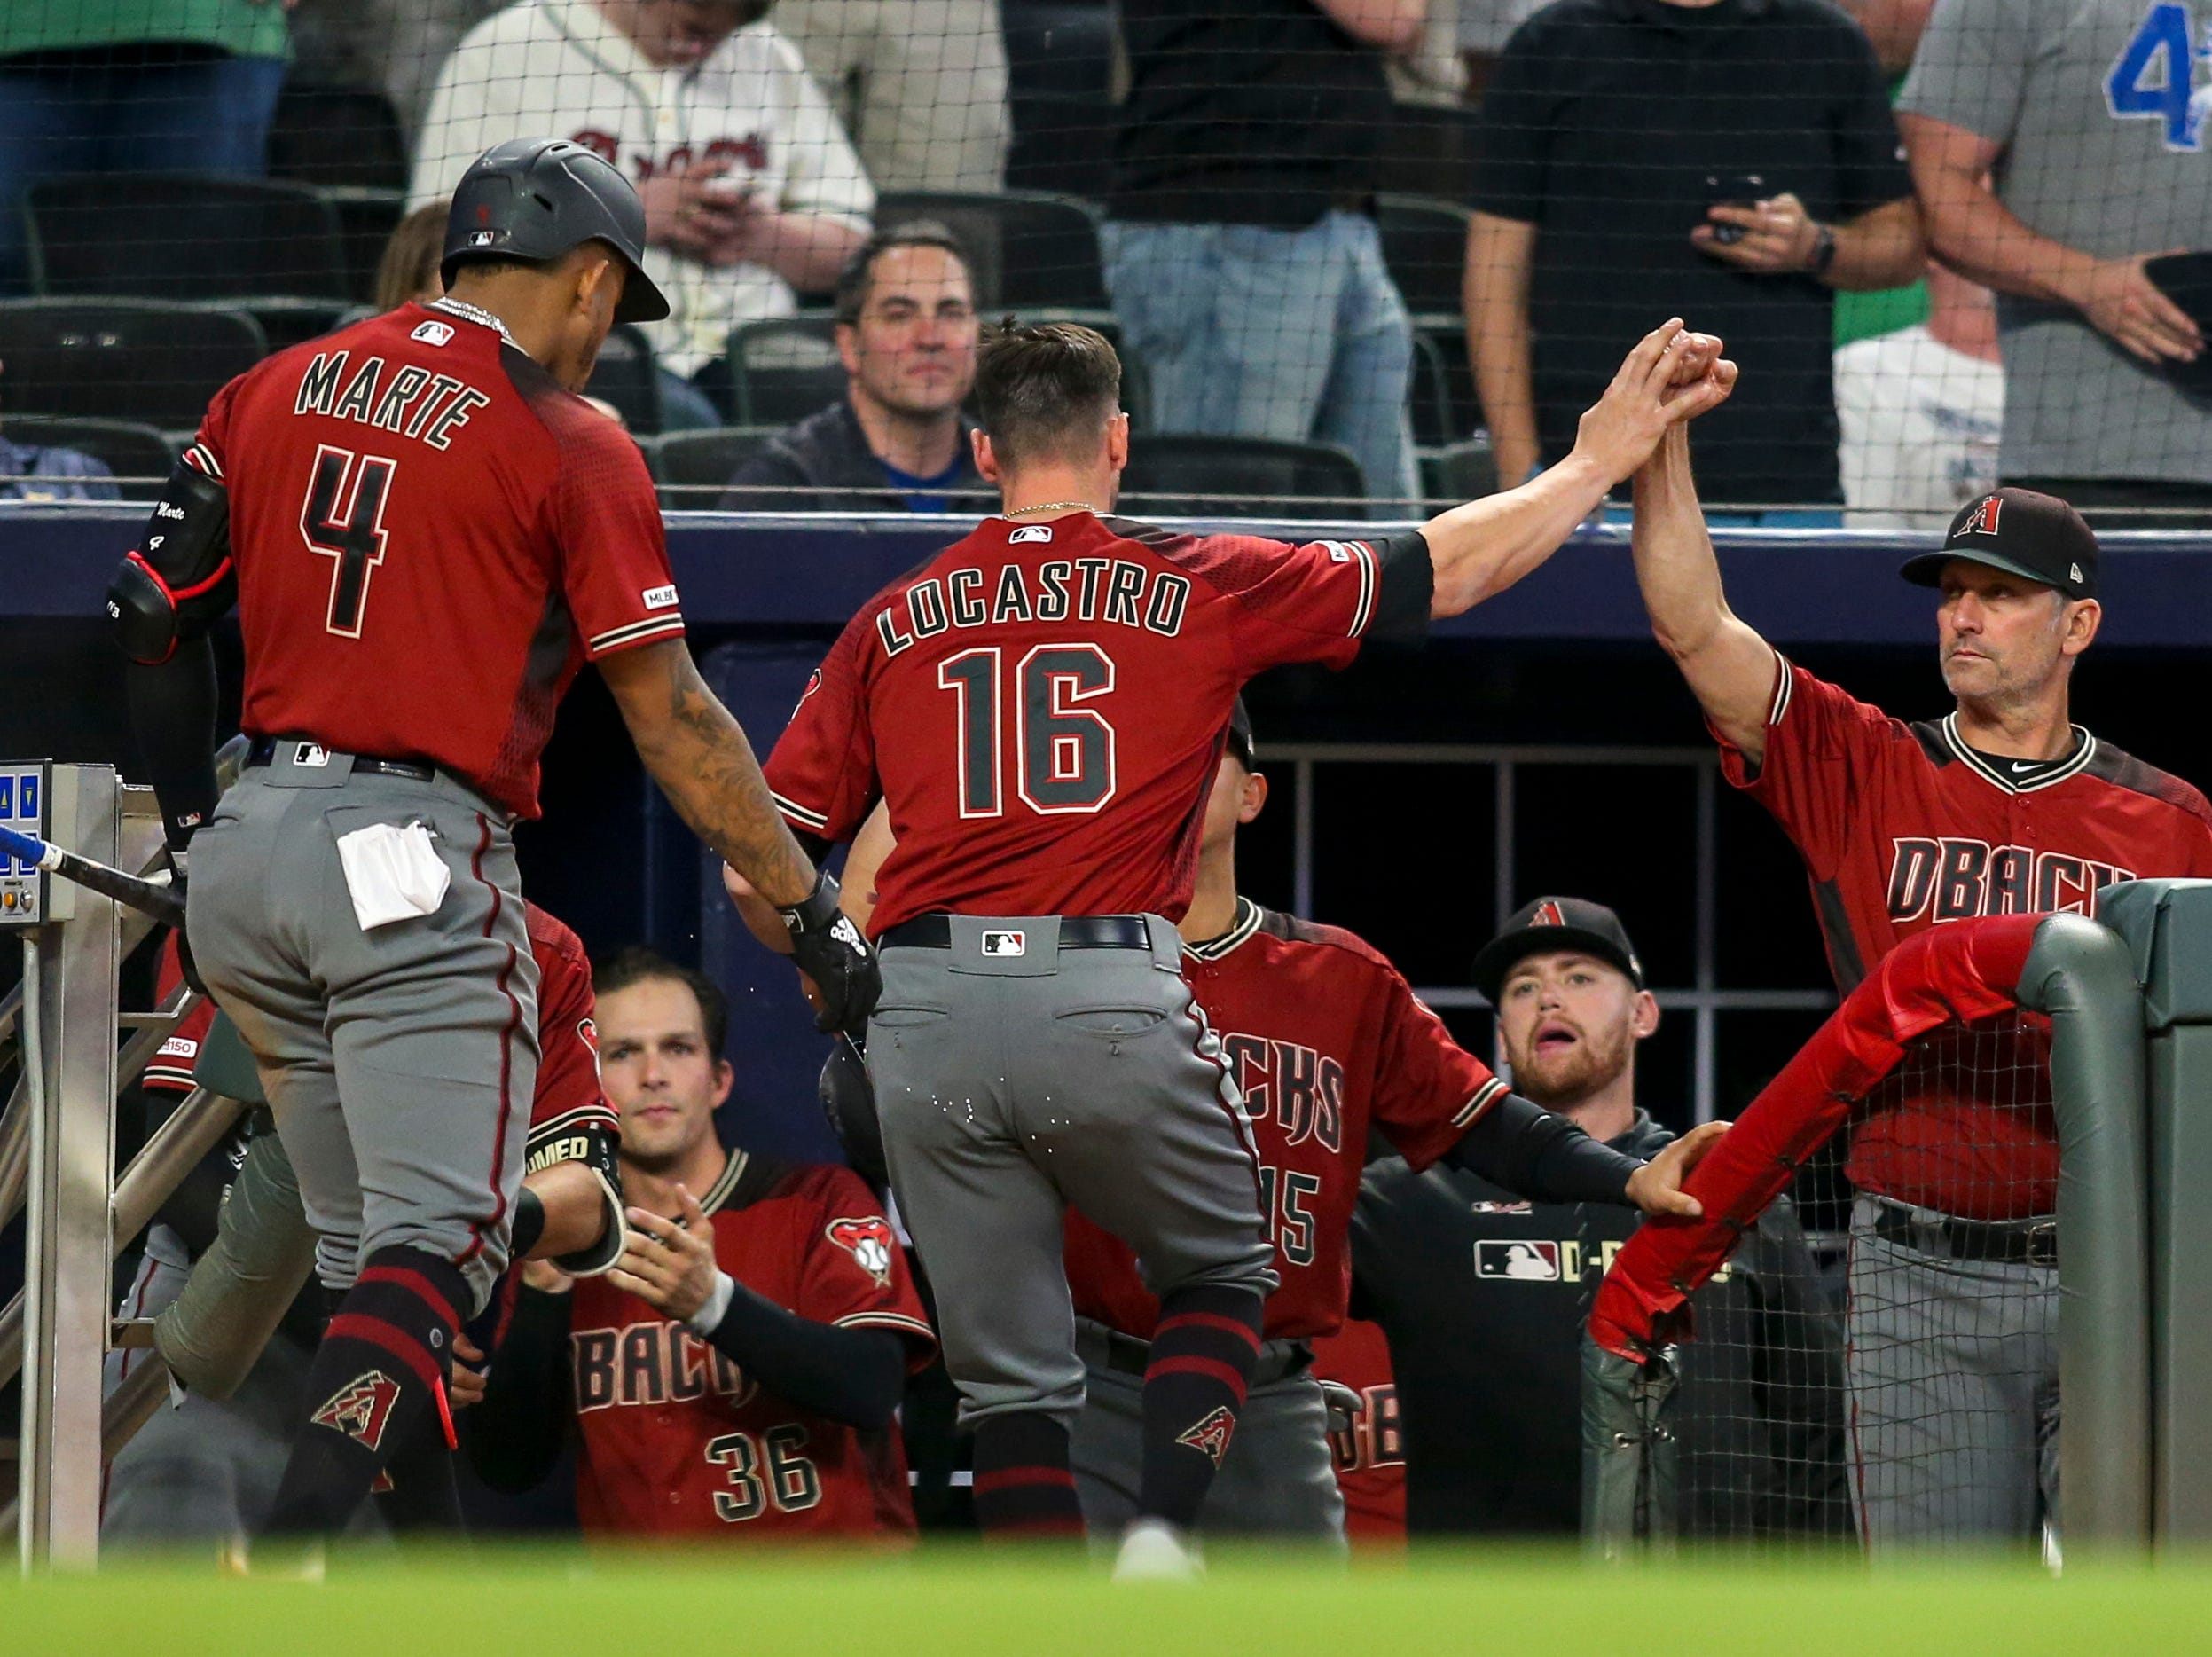 Apr 17, 2019; Atlanta, GA, USA; Arizona Diamondbacks center fielder Tim Locastro (16) celebrates with manager Torey Lovullo (17) after scoring against the Atlanta Braves in the tenth inning at SunTrust Park. Mandatory Credit: Brett Davis-USA TODAY Sports